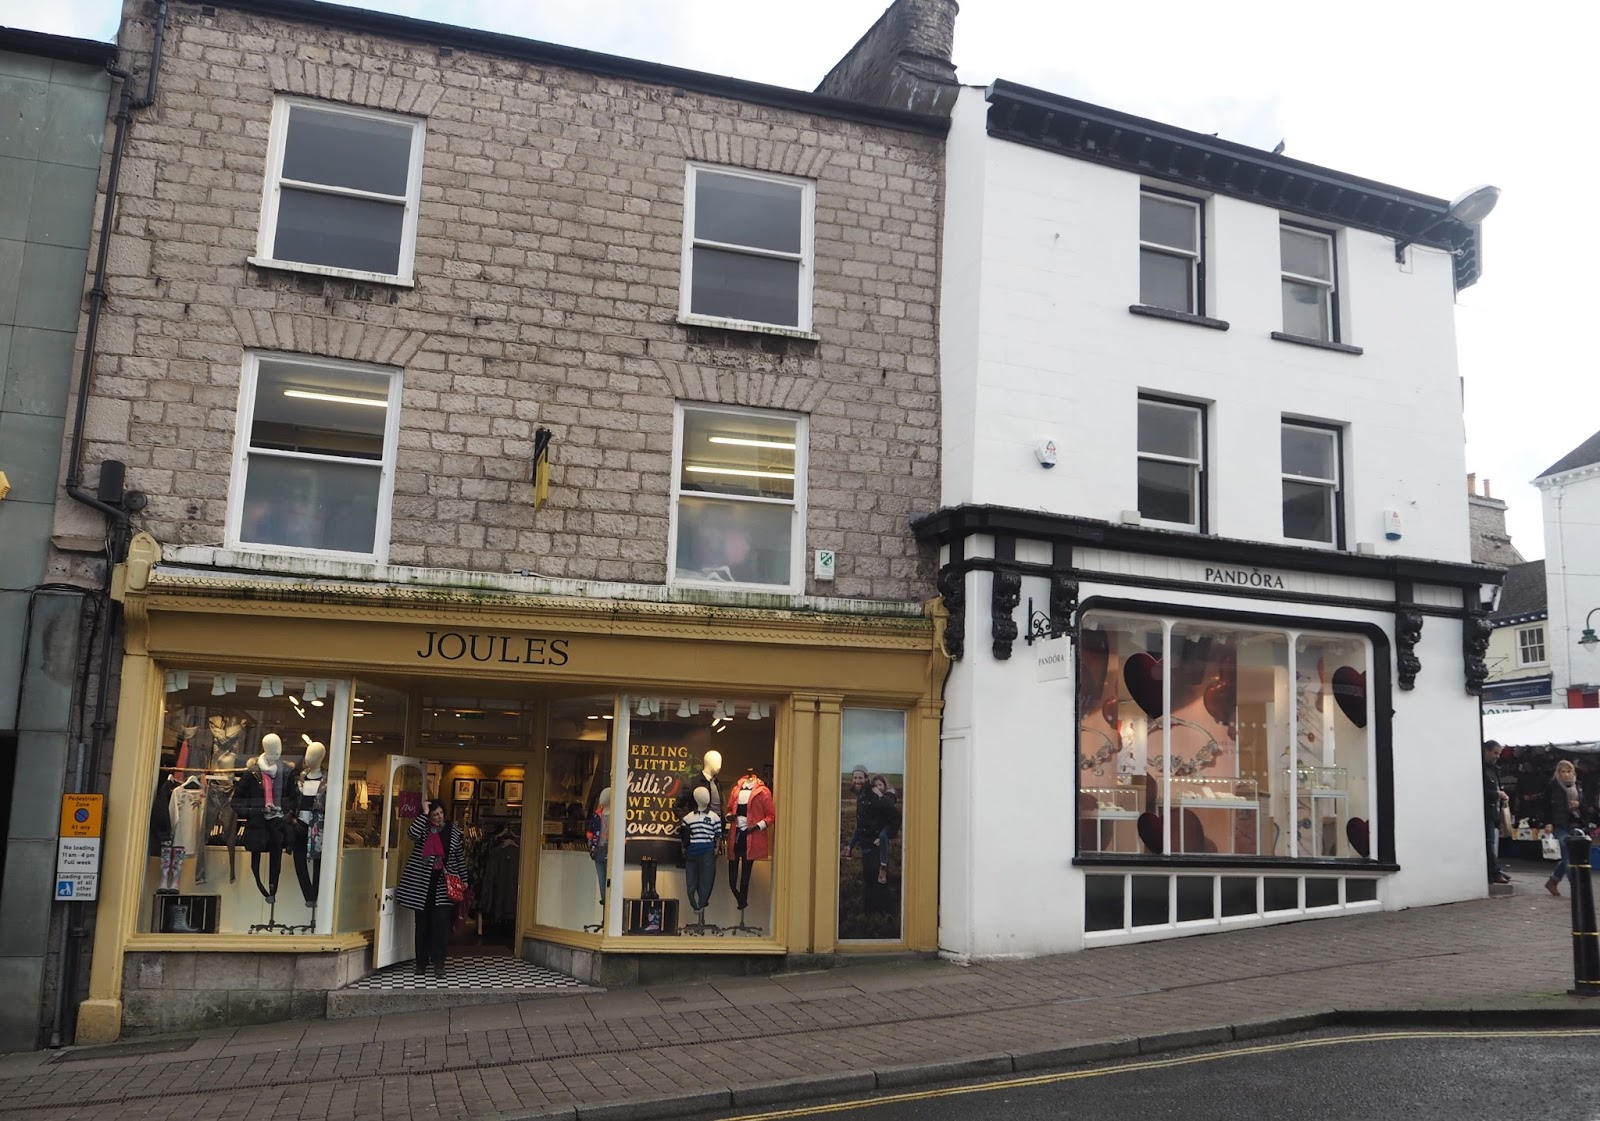 Well-known brands, Joules and Pandora, Kendal high street